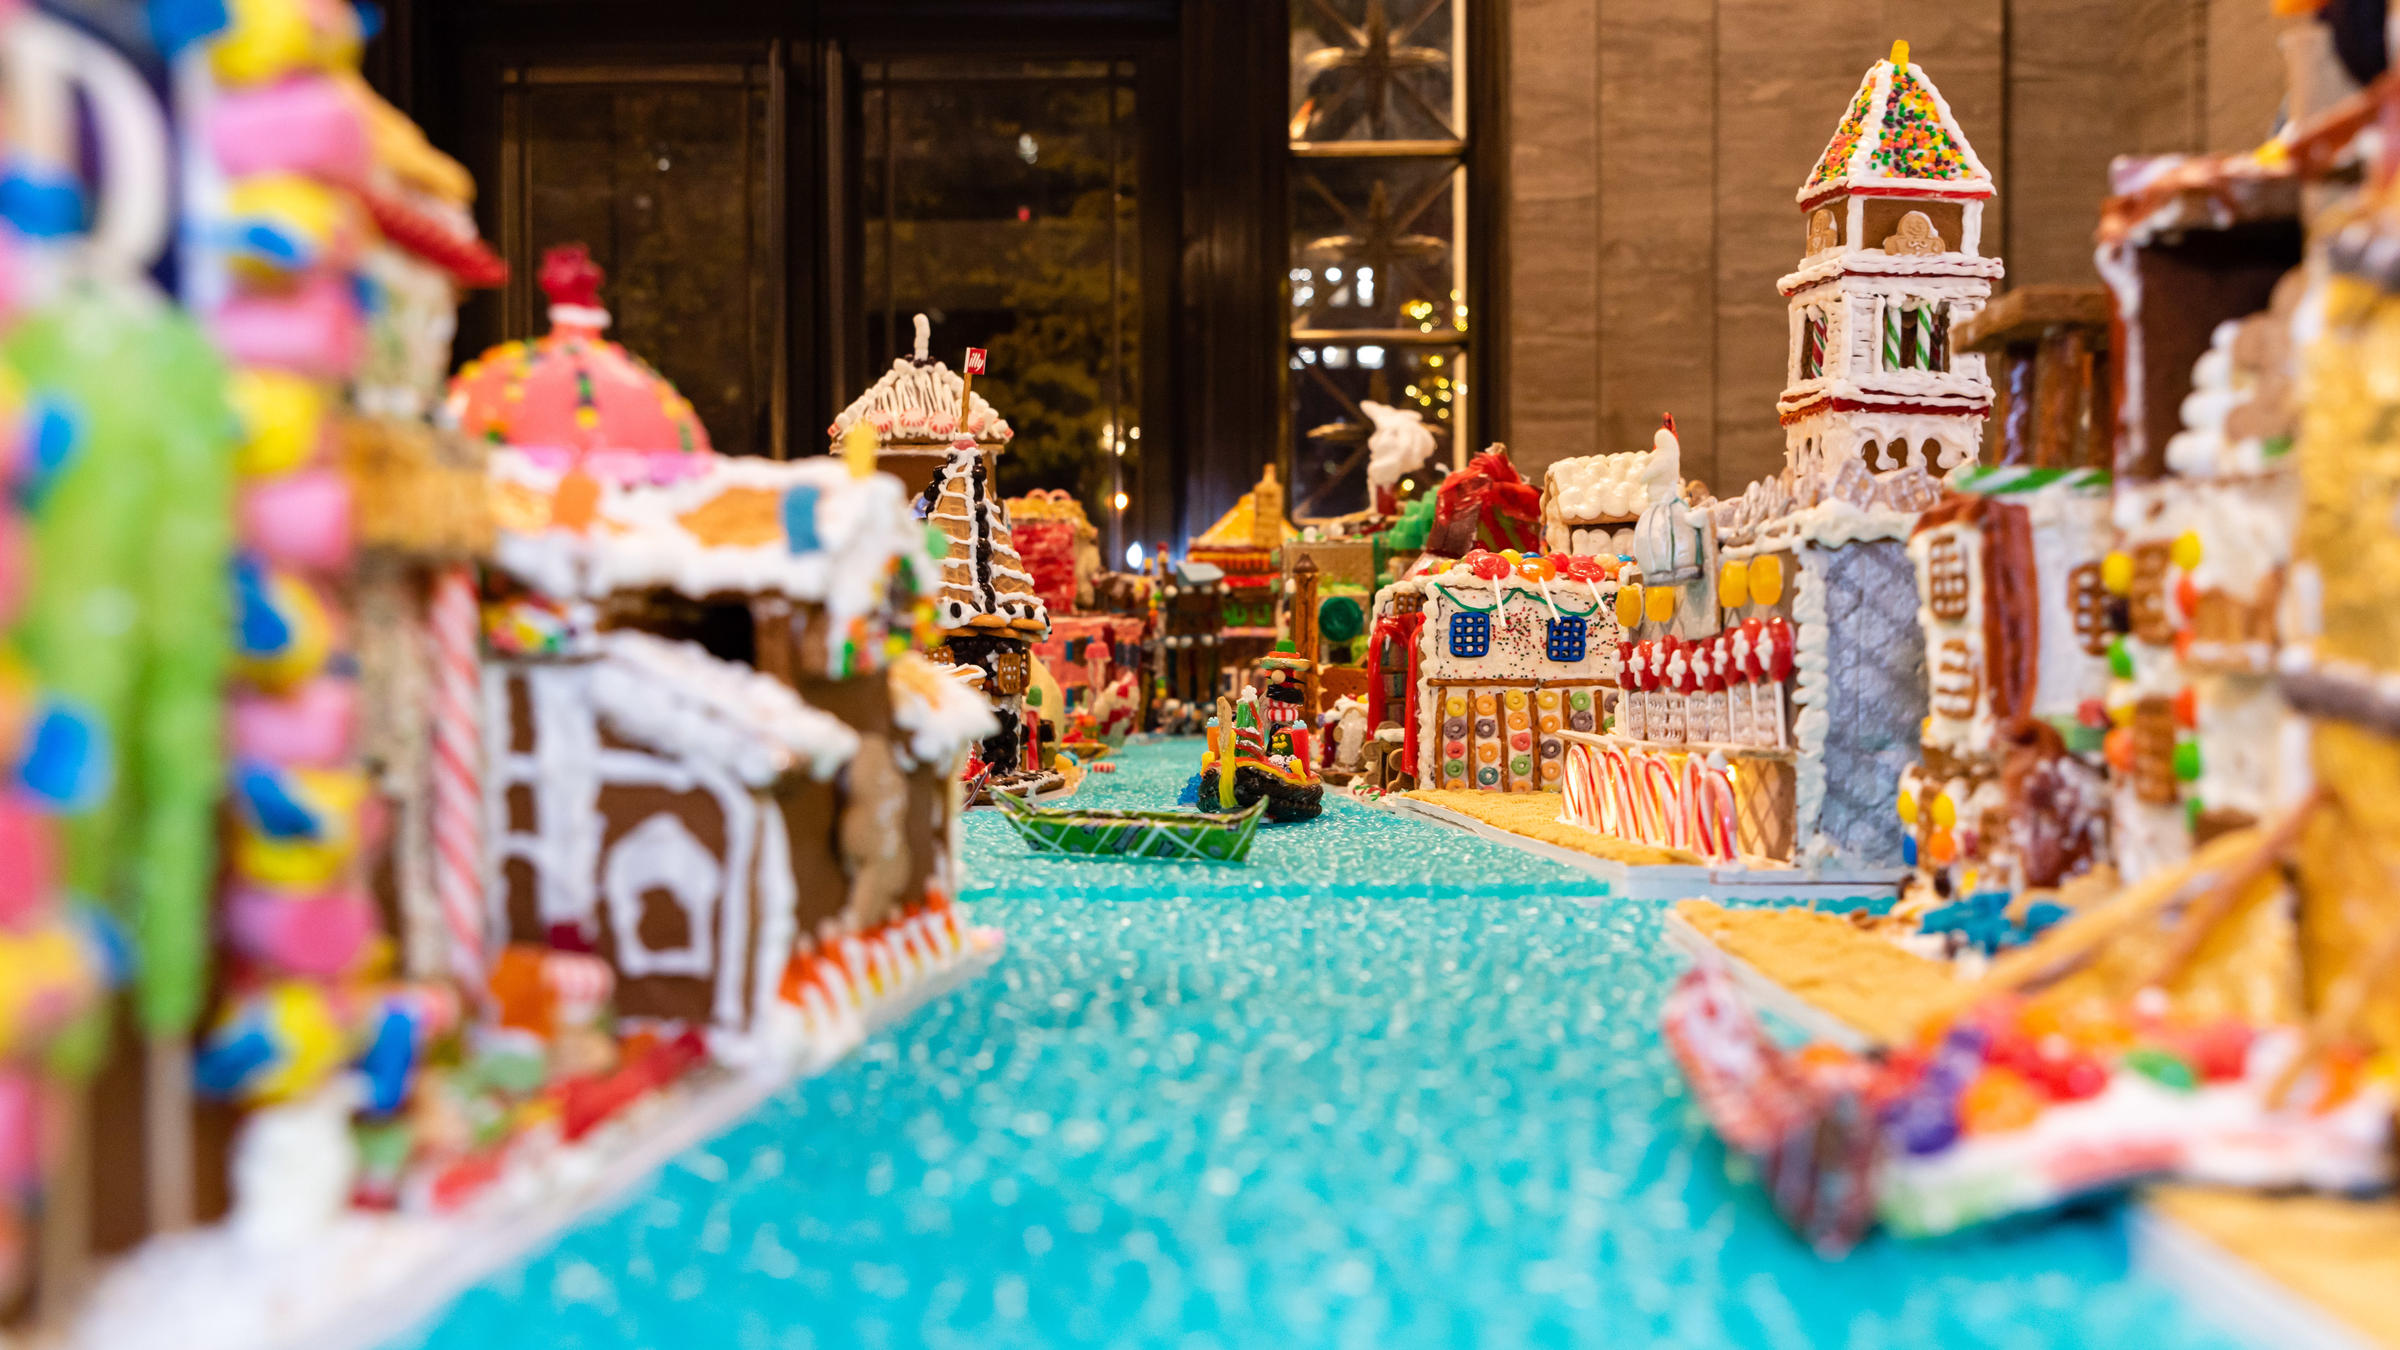 Candy Canals: Architects Craft Gingerbread Replica Of Venice